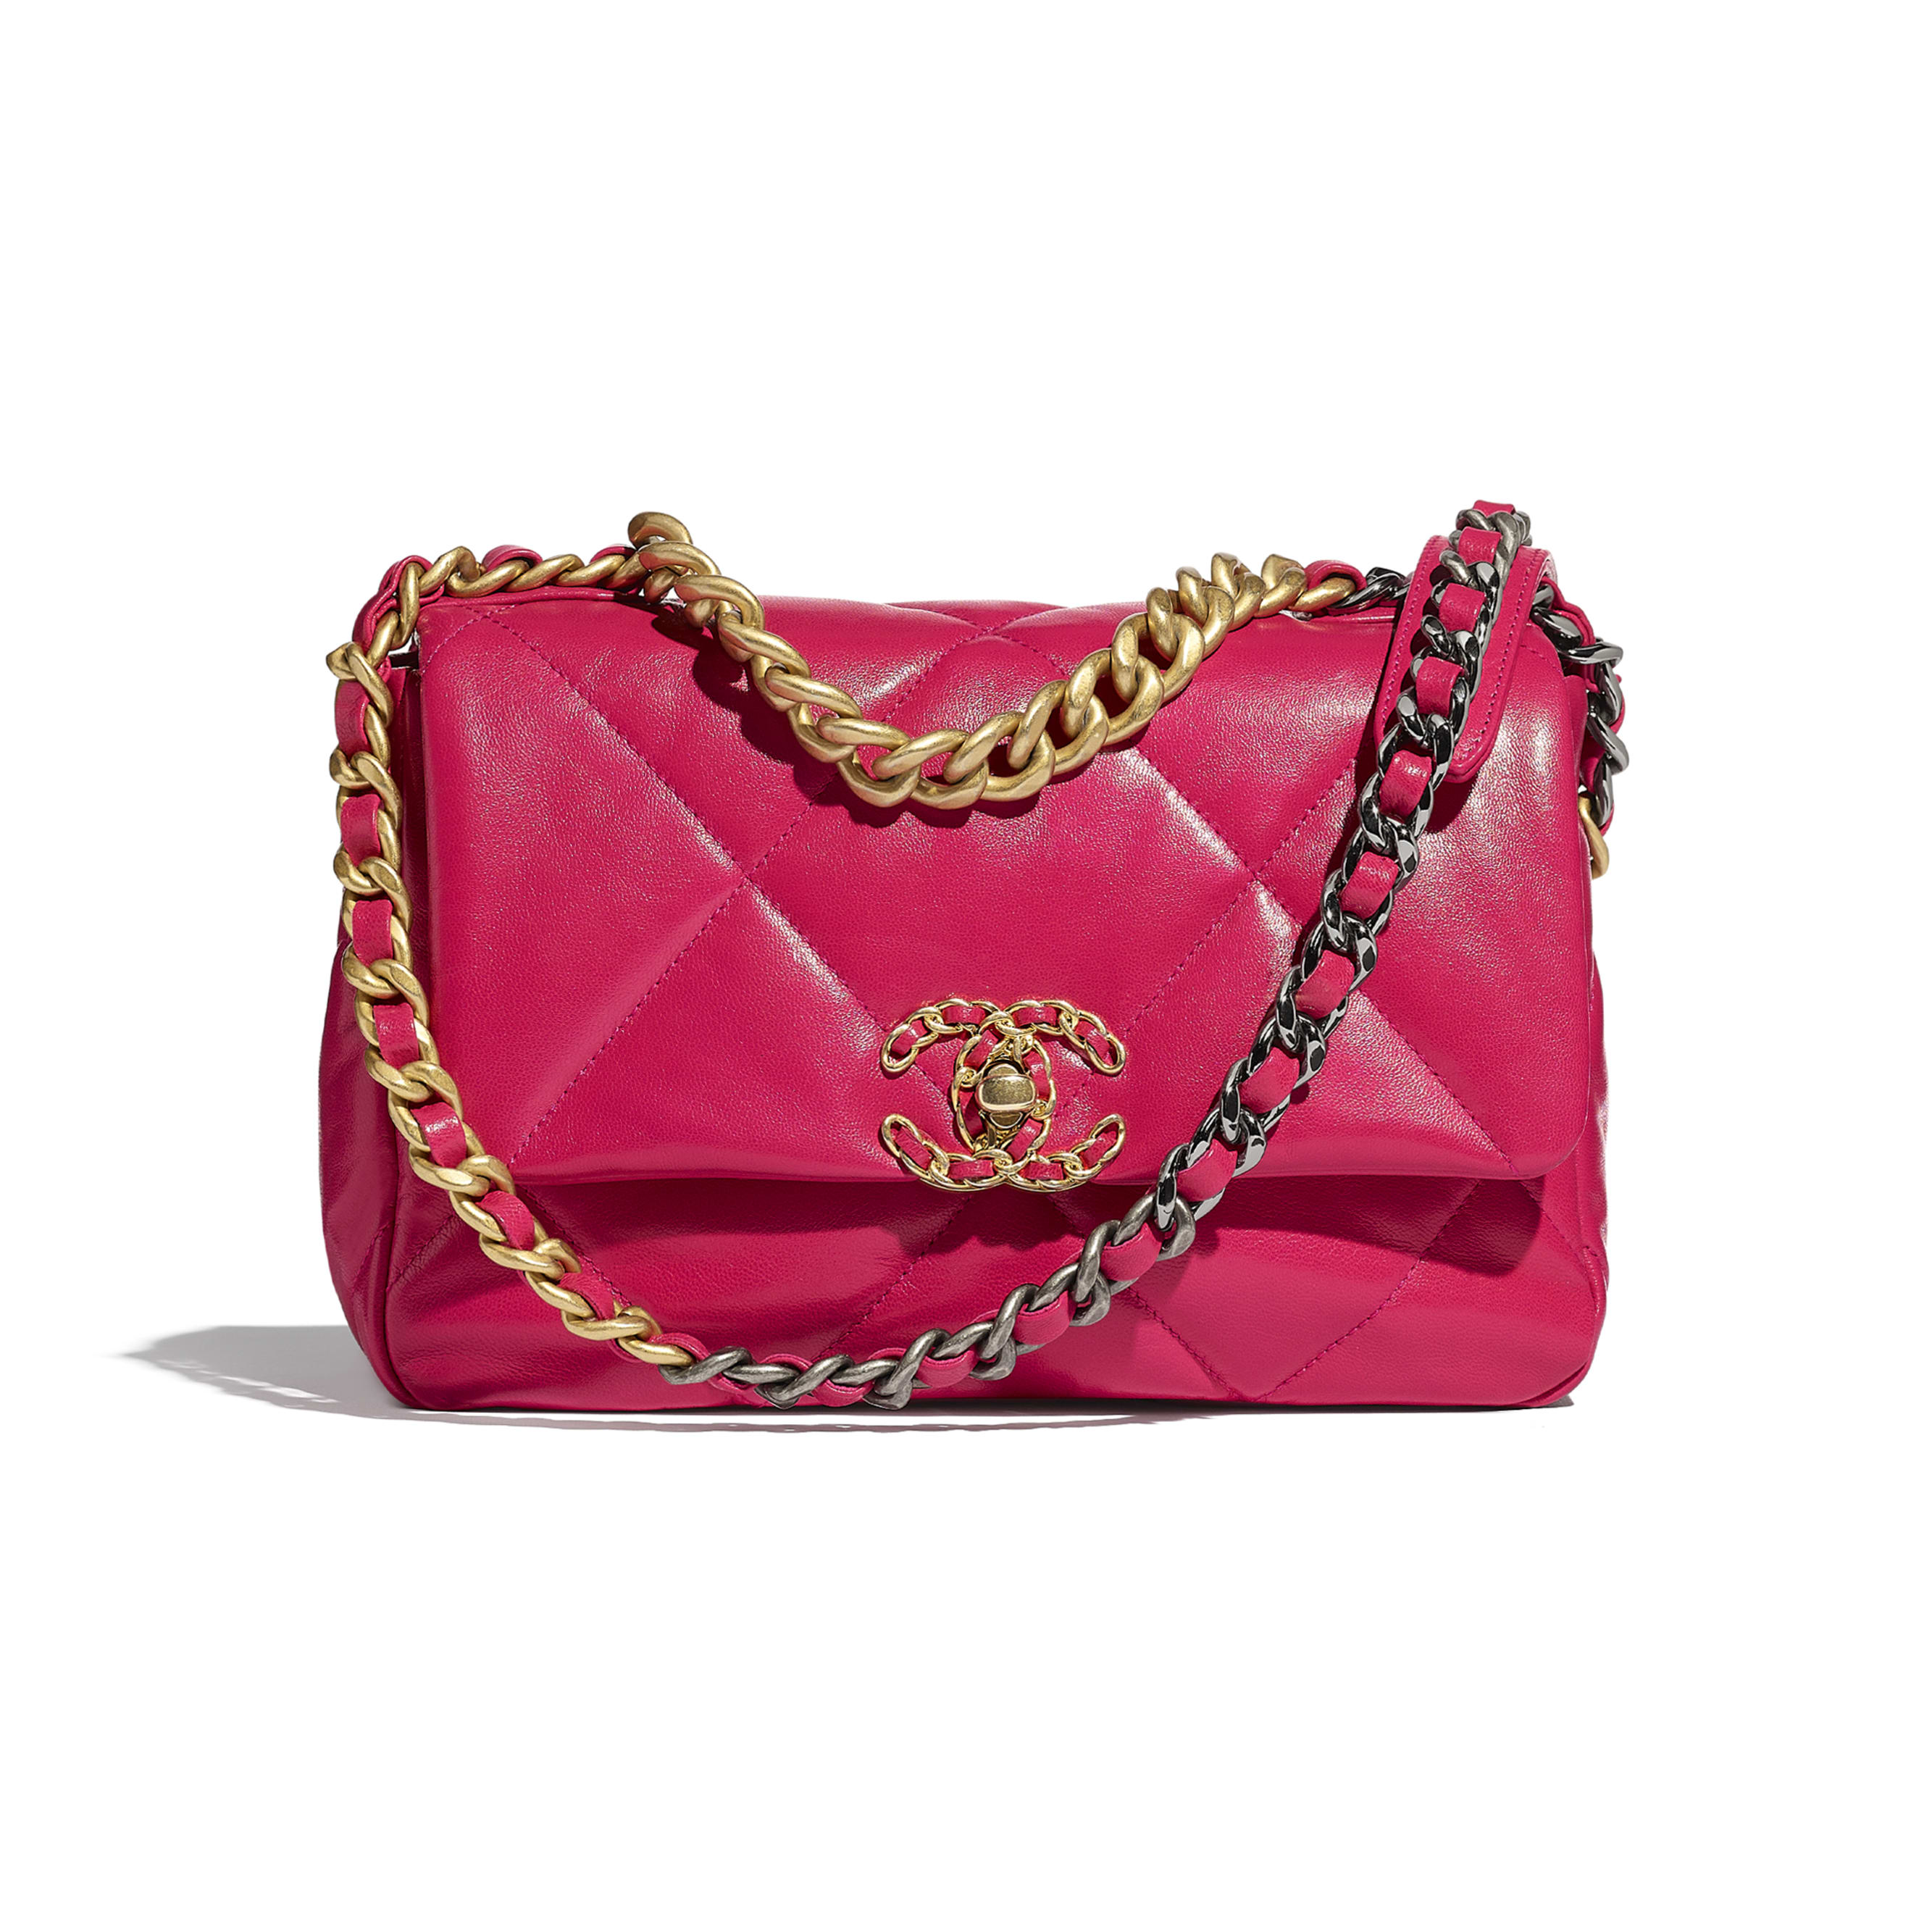 CHANEL 19 Flap Bag - Pink - Goatskin, Gold-Tone, Silver-Tone & Ruthenium-Finish Metal - CHANEL - Default view - see standard sized version